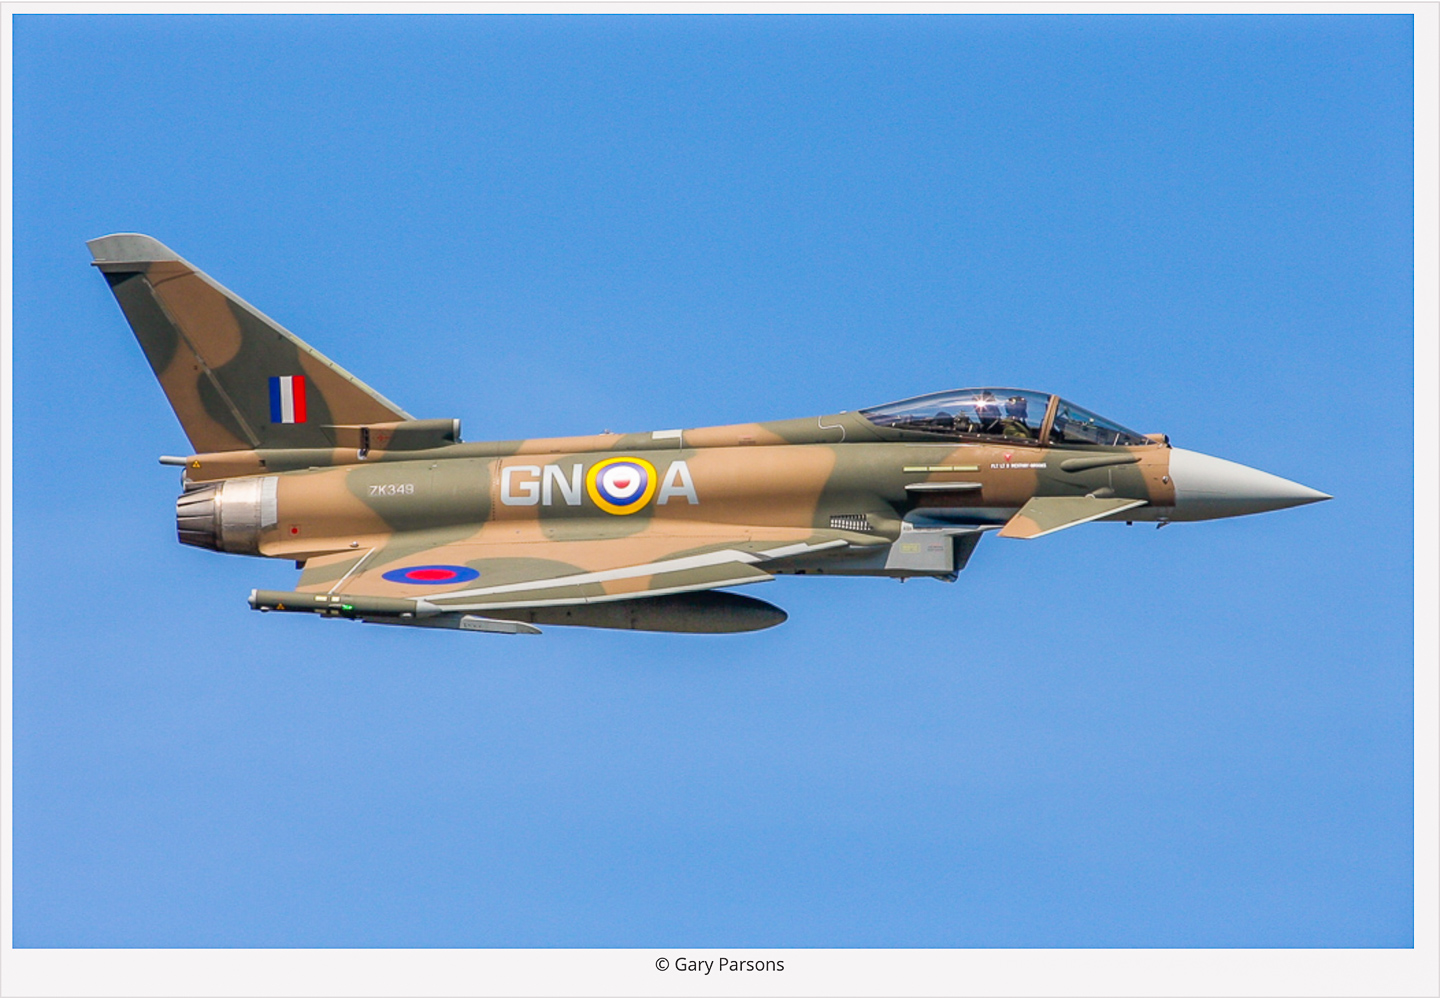 The 29(R) Squadron Typhoon II painted to represent James Nicholson's Hawker Hurricane from his Victoria Cross-winning combat during the Battle of Britain. (photo by Gary Parsons via Global Aviation Resource)